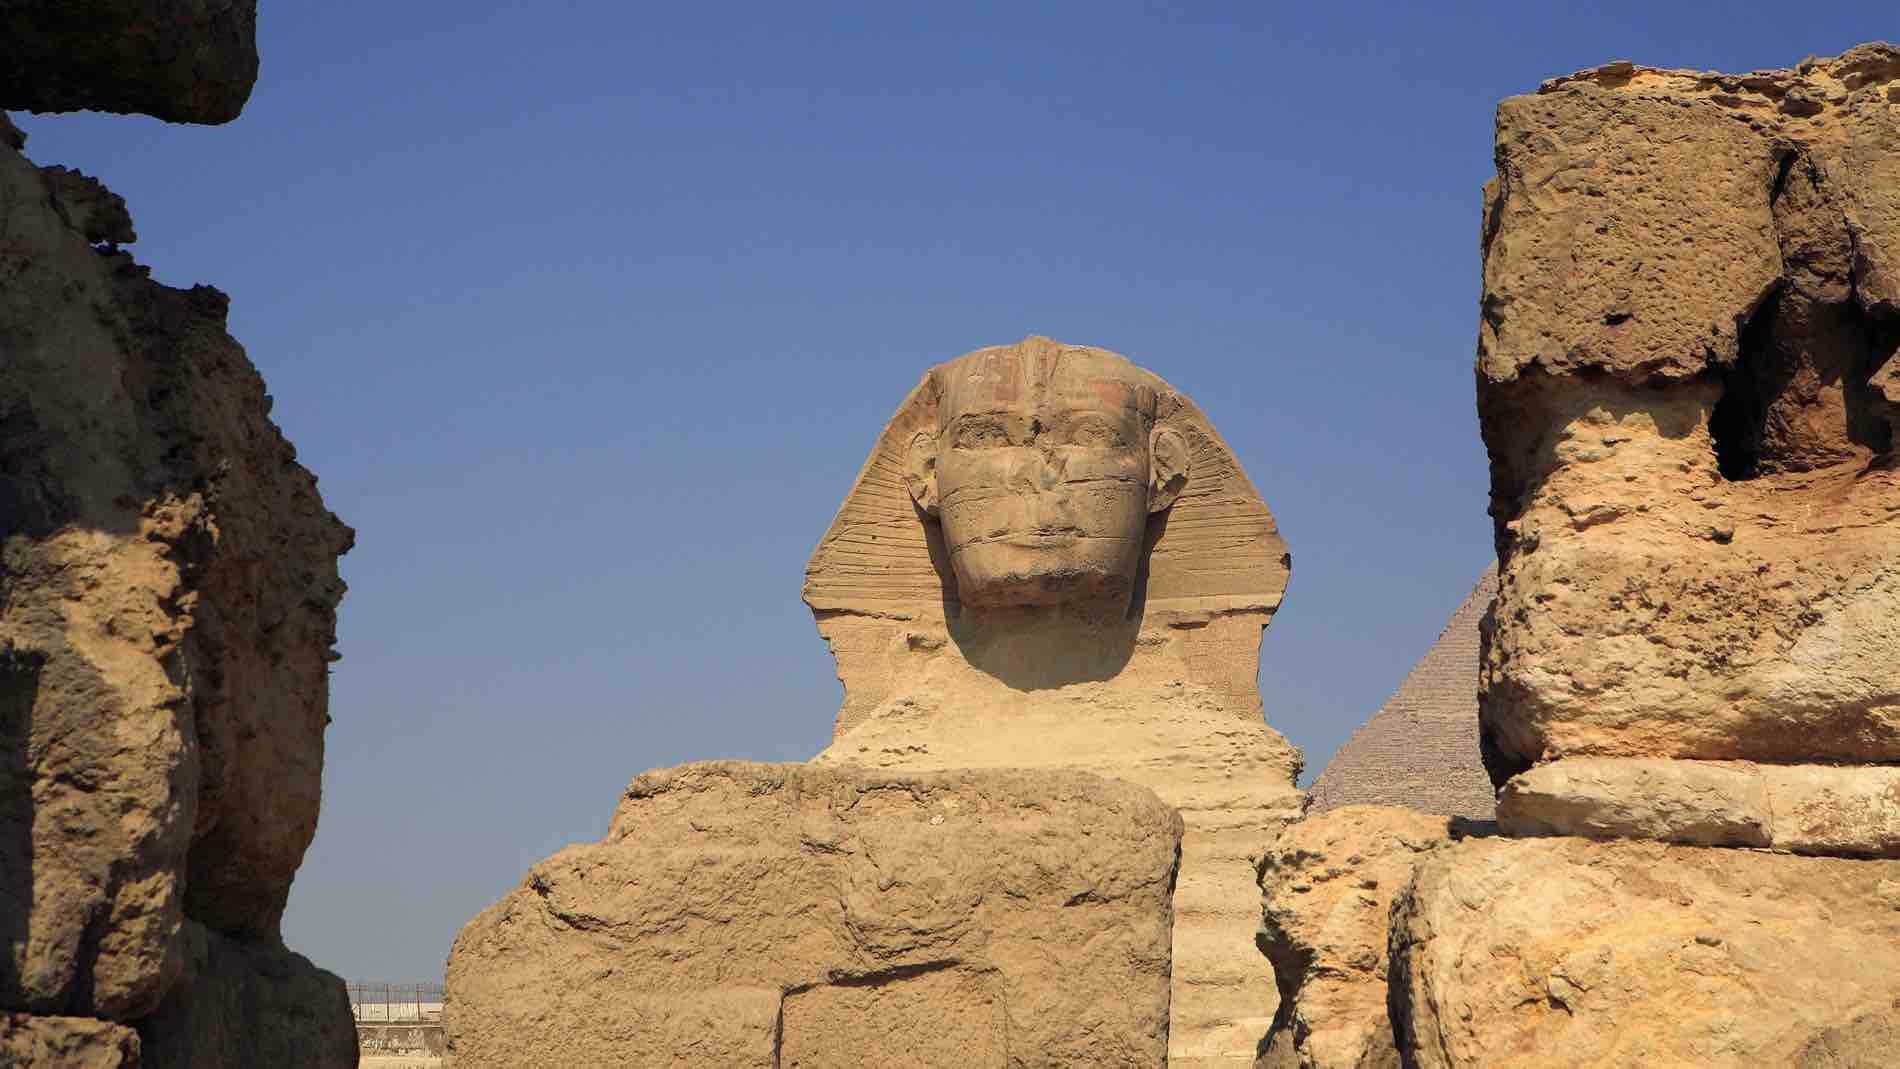 Great journey: Face to face with The Sphinx in Giza, Cairo